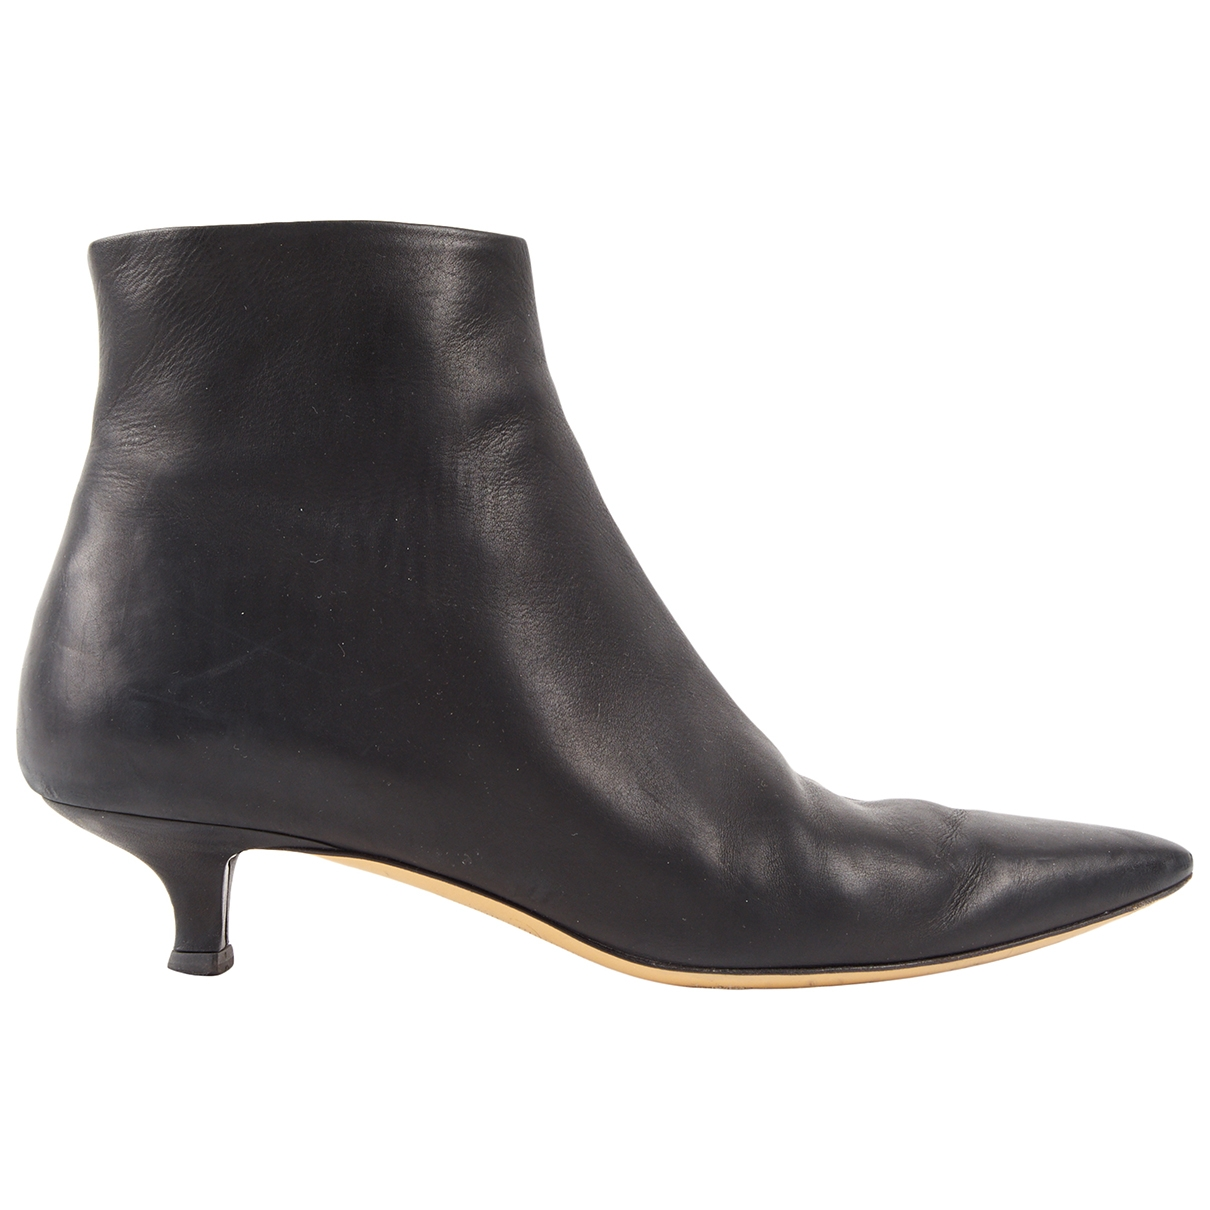 The Row \N Black Leather Ankle boots for Women 36.5 EU